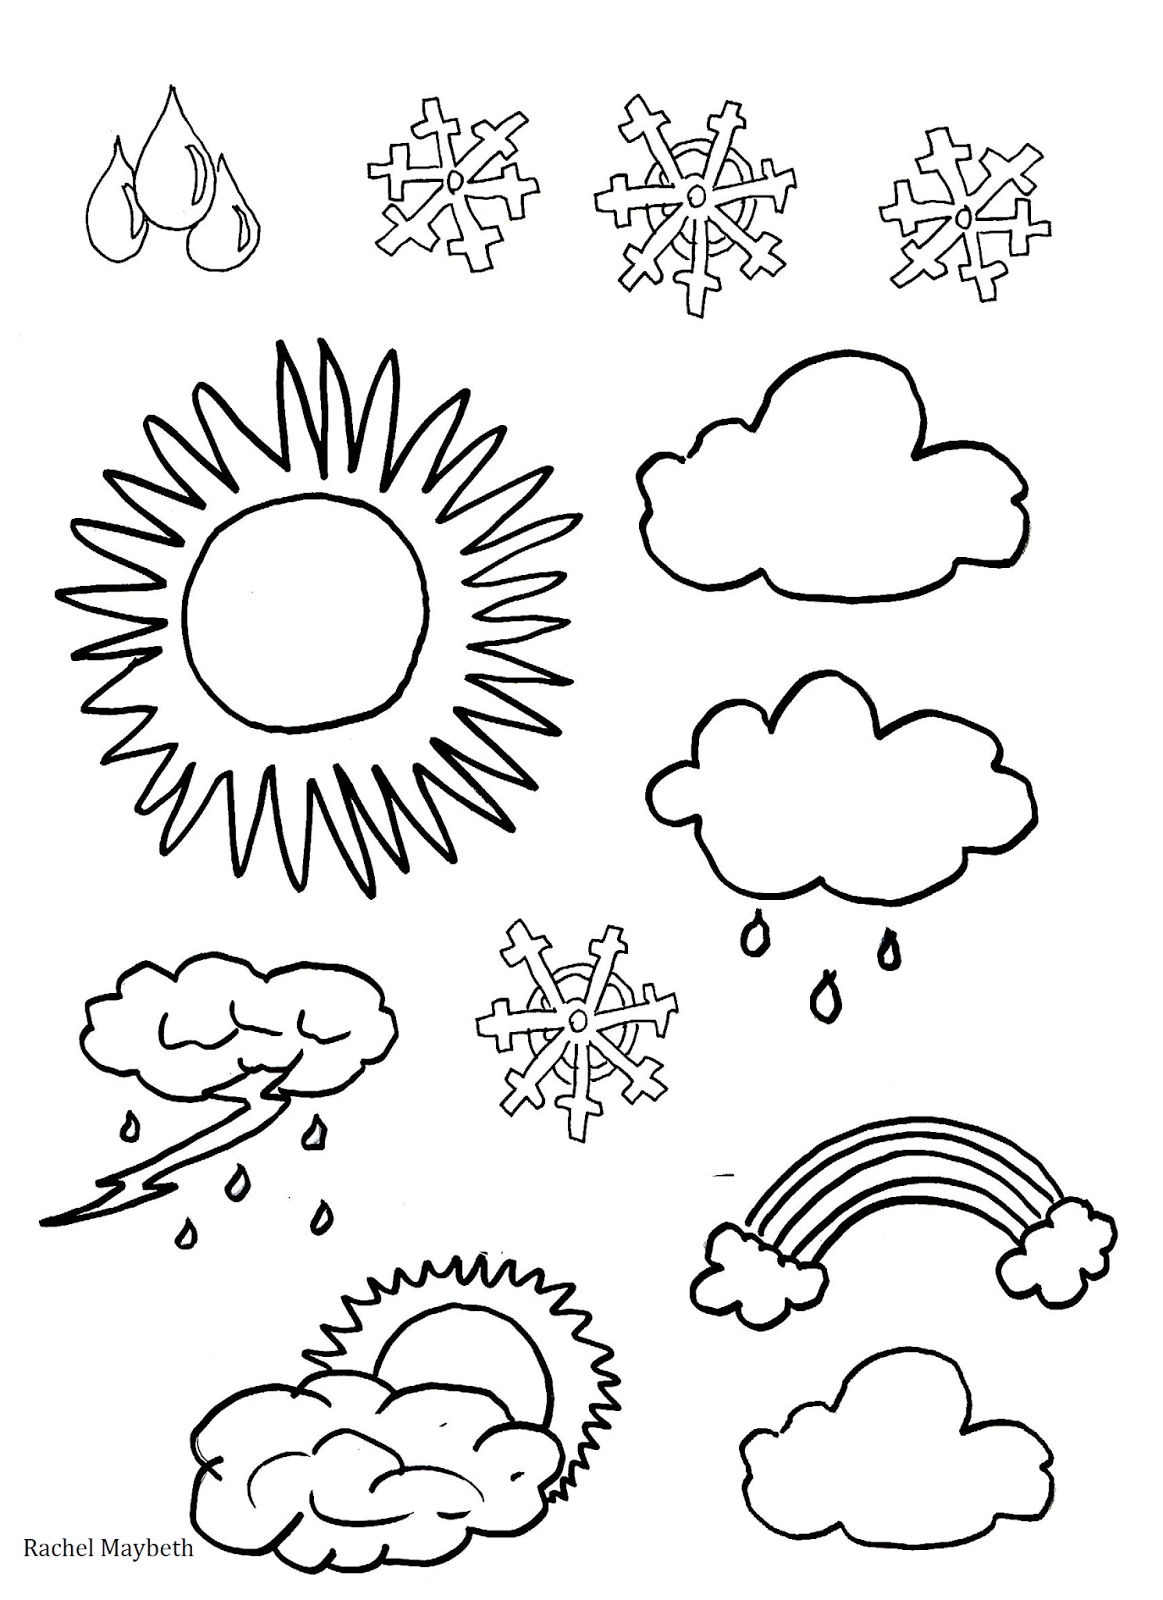 rachel maybeth free weather clipart coloring pages. Black Bedroom Furniture Sets. Home Design Ideas